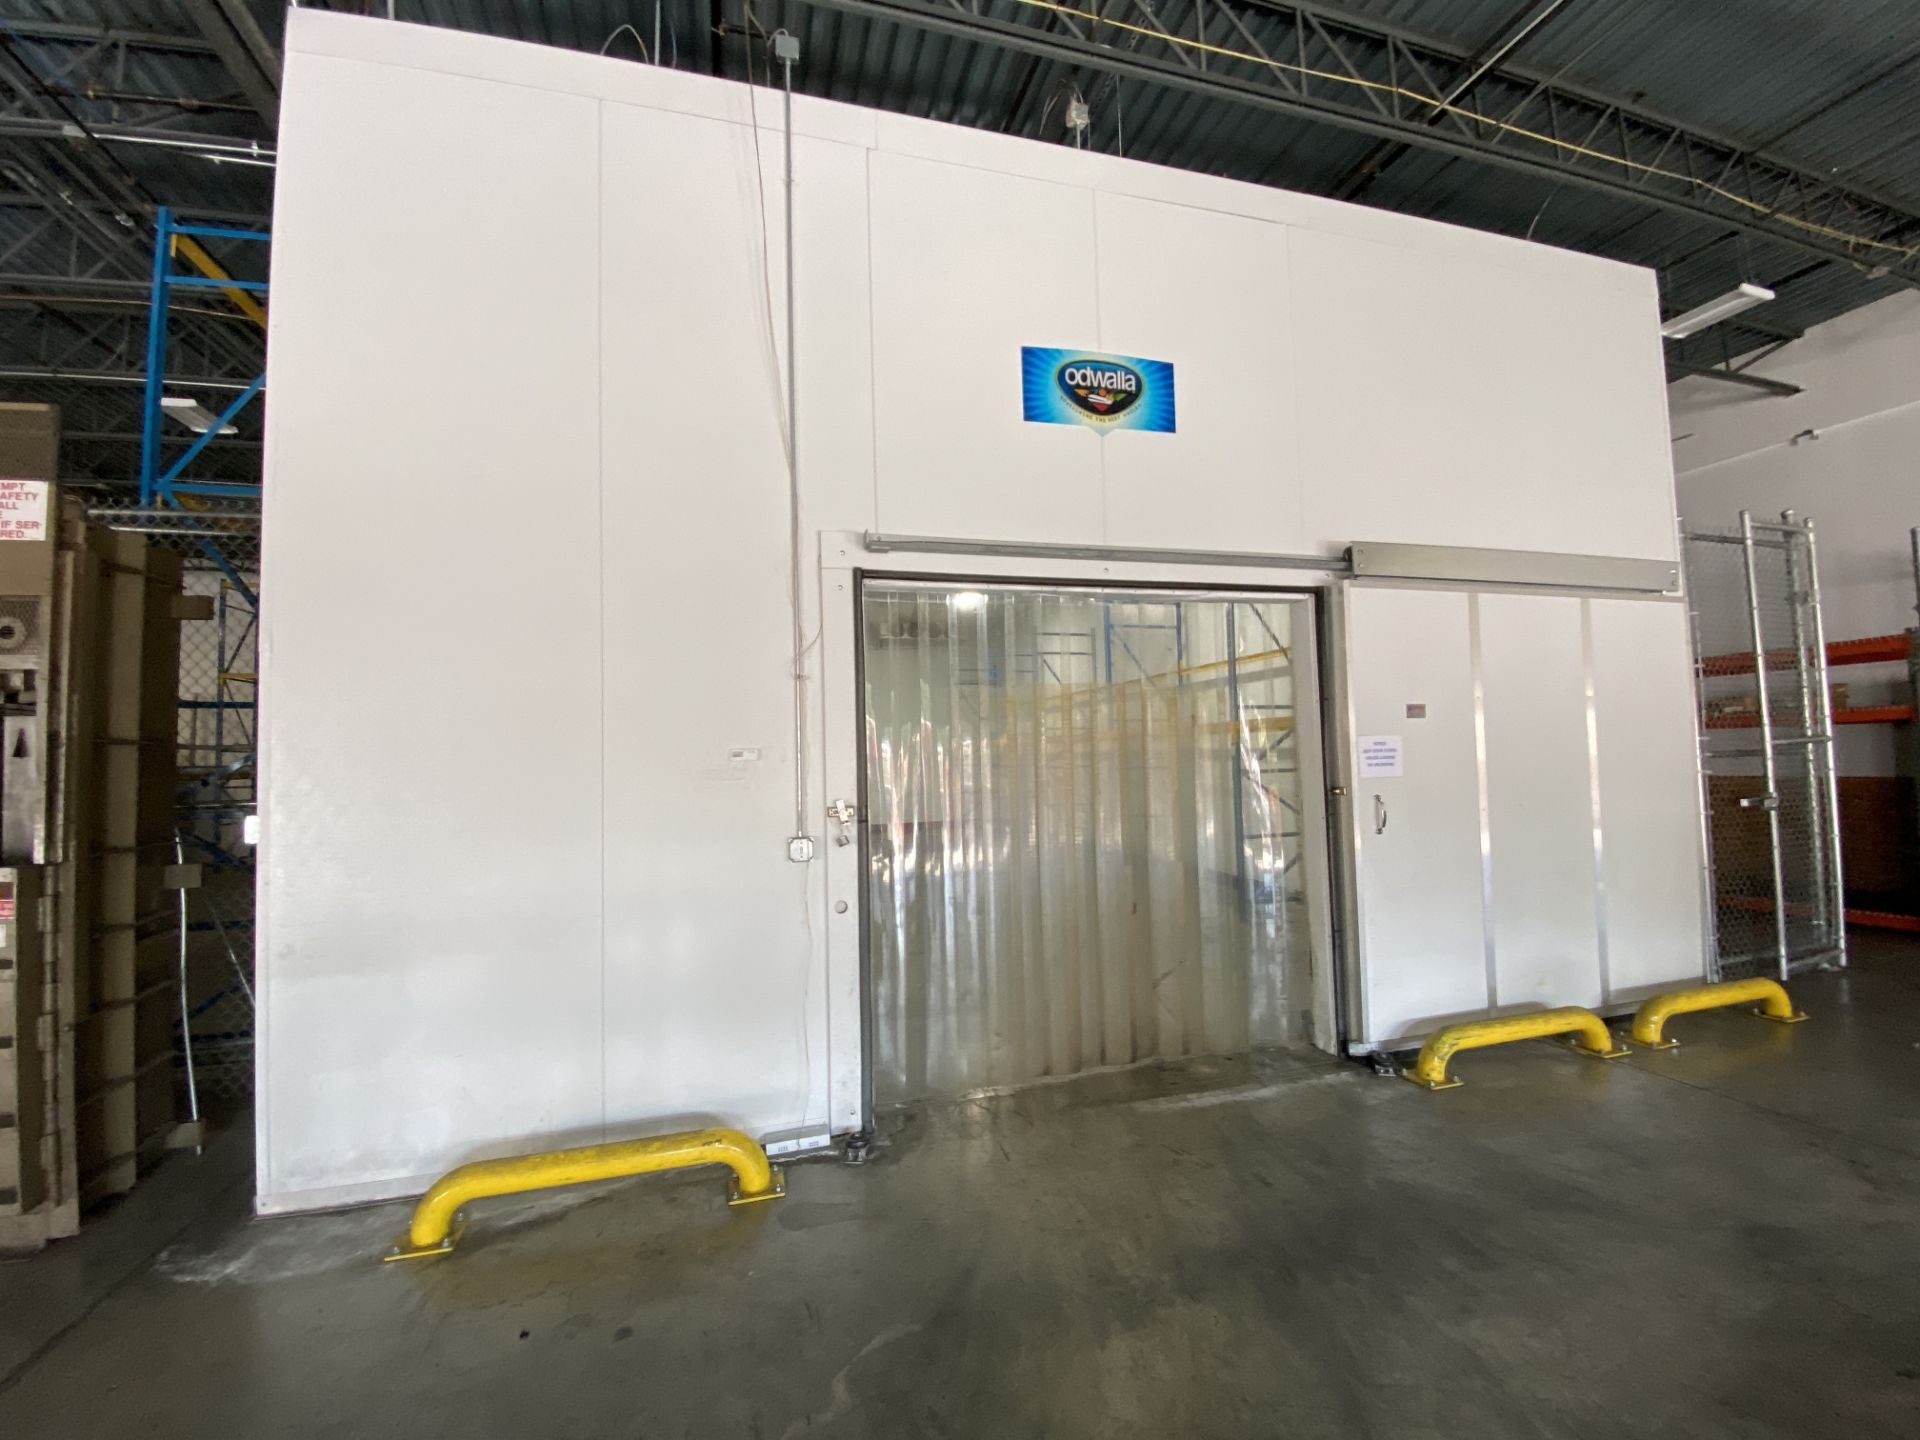 AIP (American Insulated Panel) drive in panel system free standing cooler, 50' X 25' X 18' clear